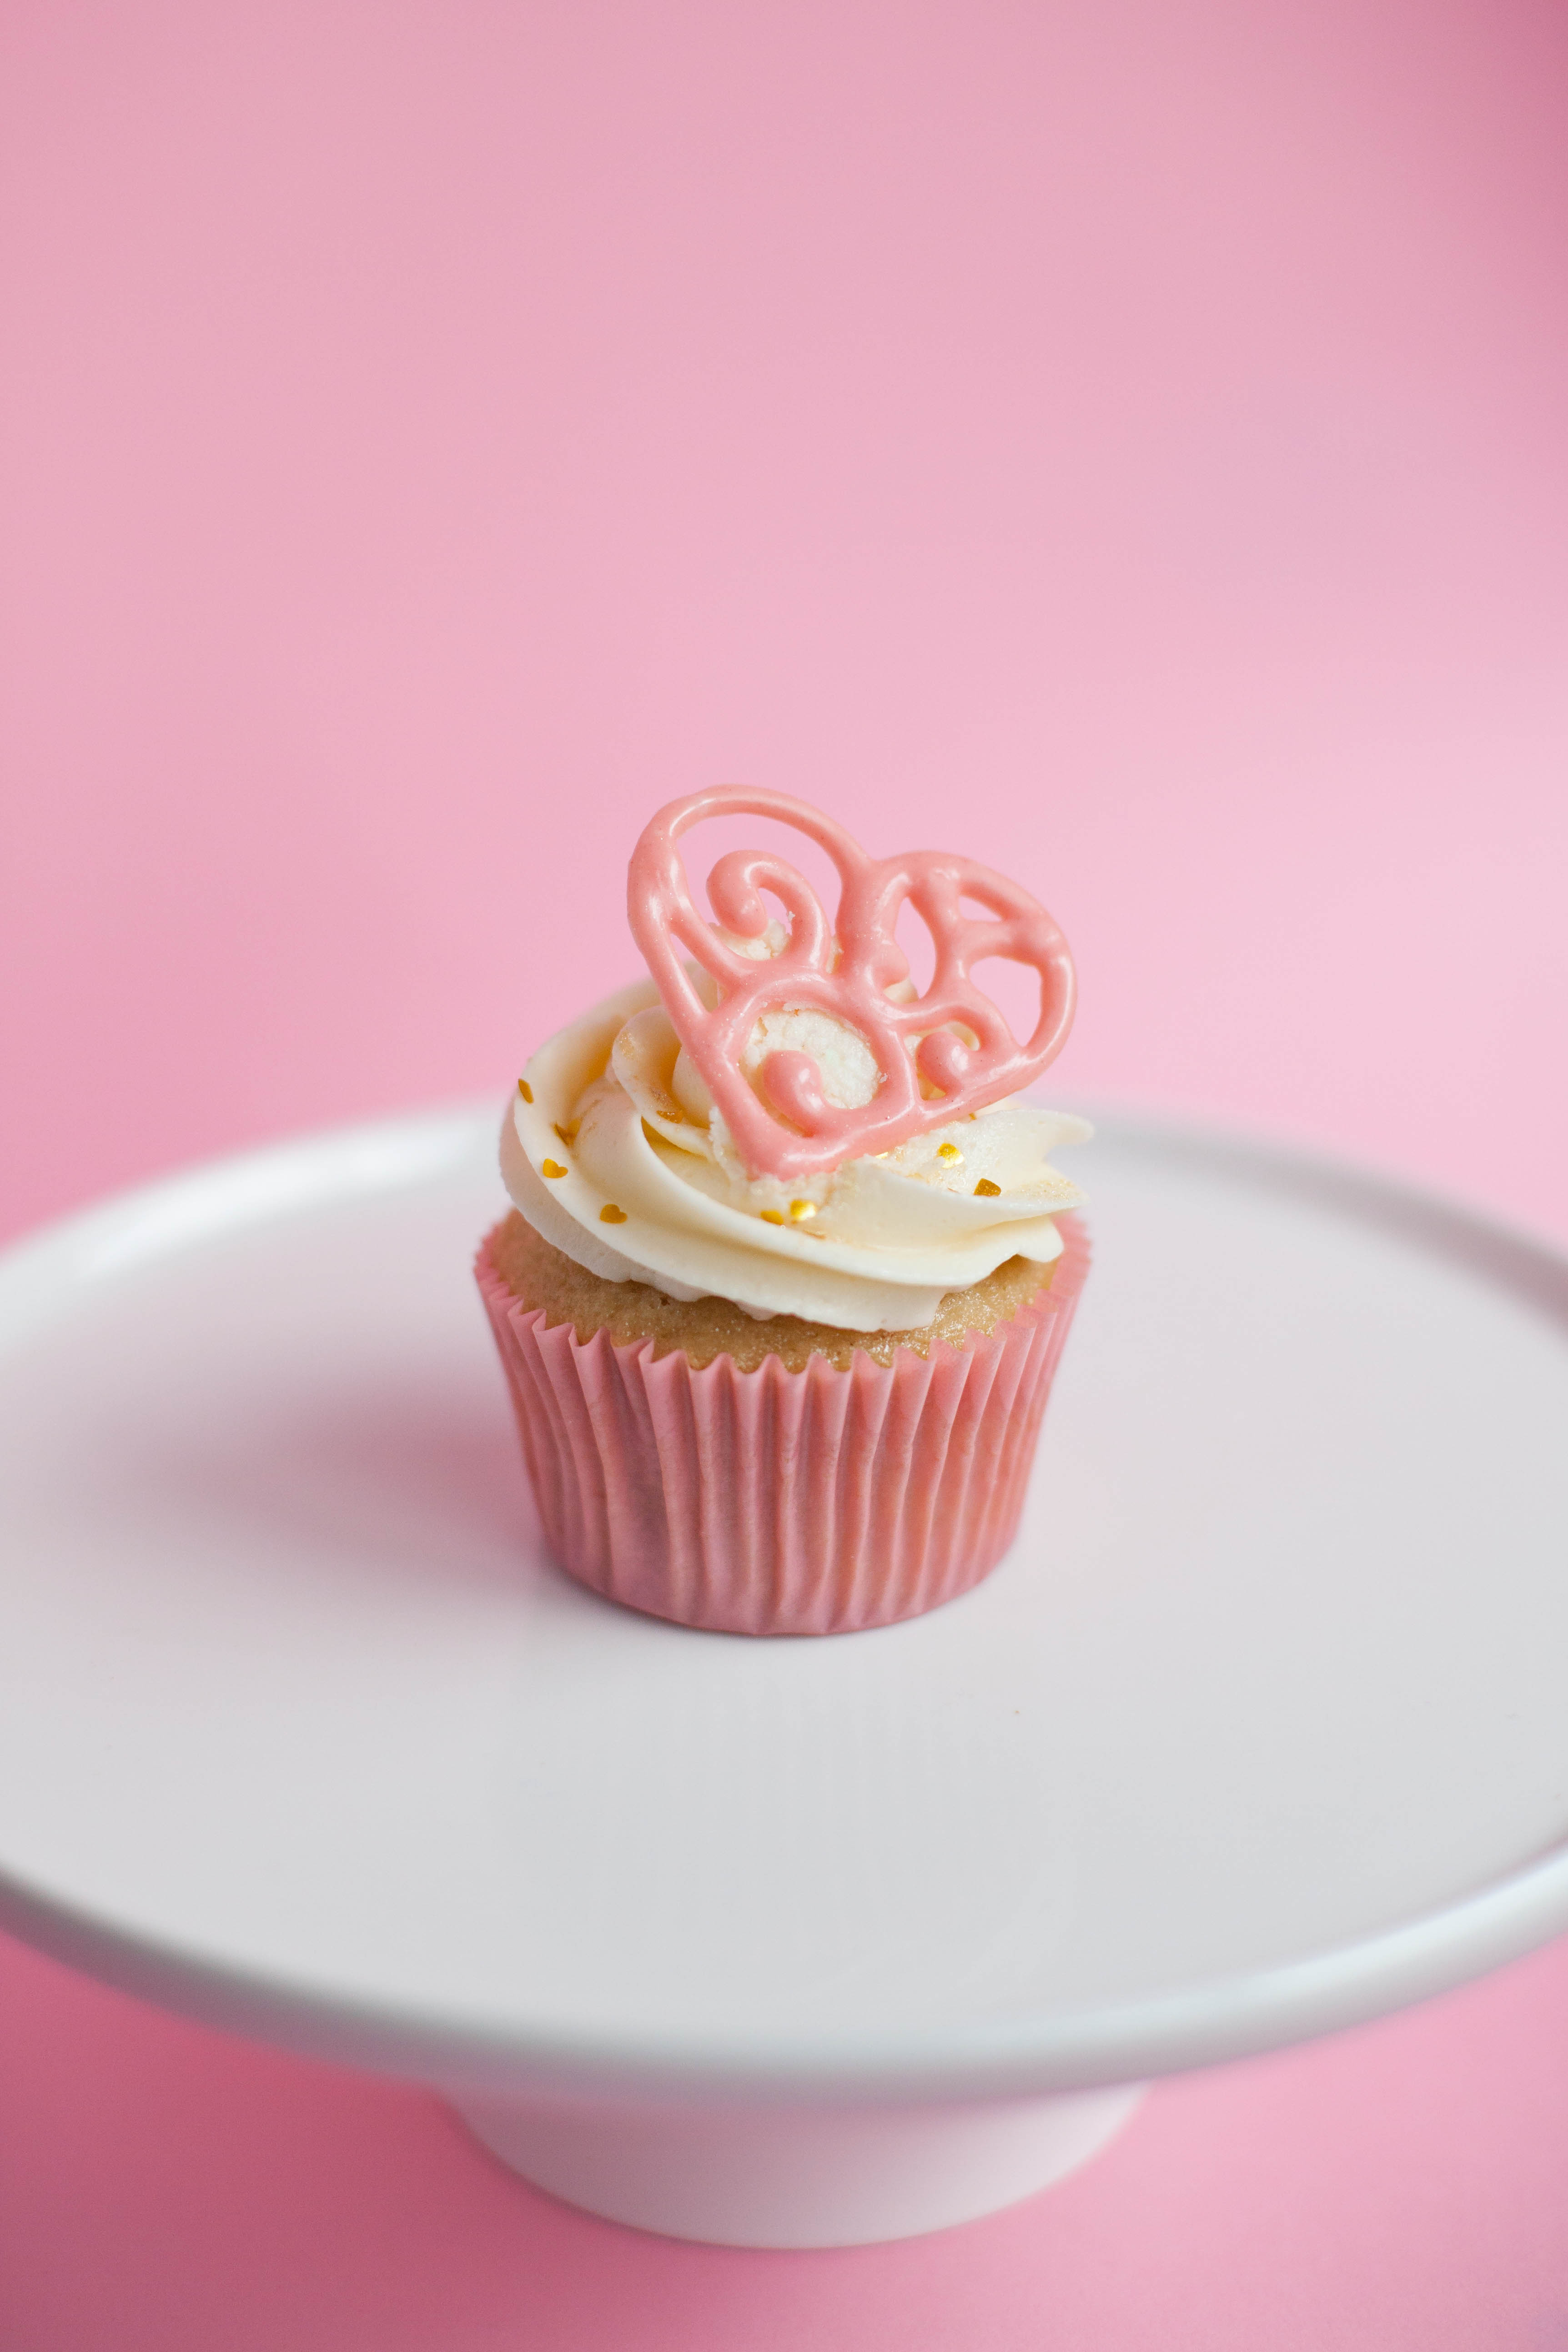 Pink And Gold Bathroom Decor: Pink And Gold Heart Cupcakes